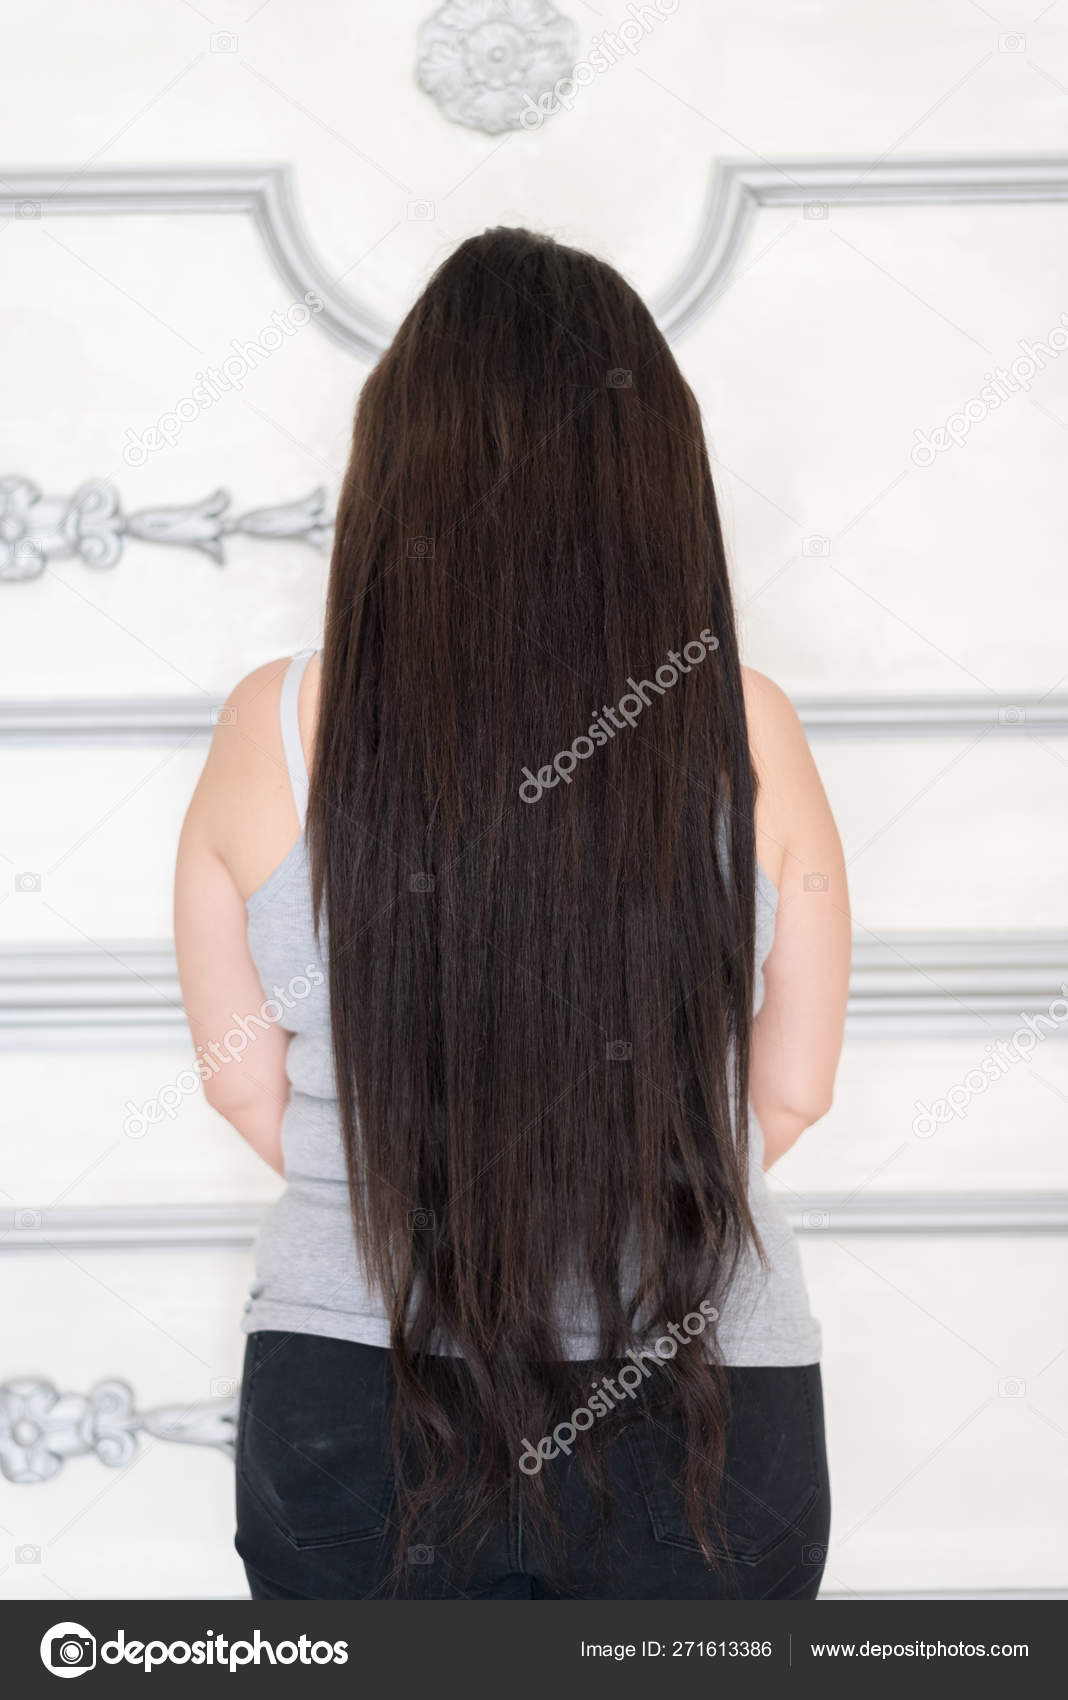 Straight Hair Back View Back View Woman Long Straight Hair Extension Hairstyle Concept Stock Photo C Focusandblur 271613386